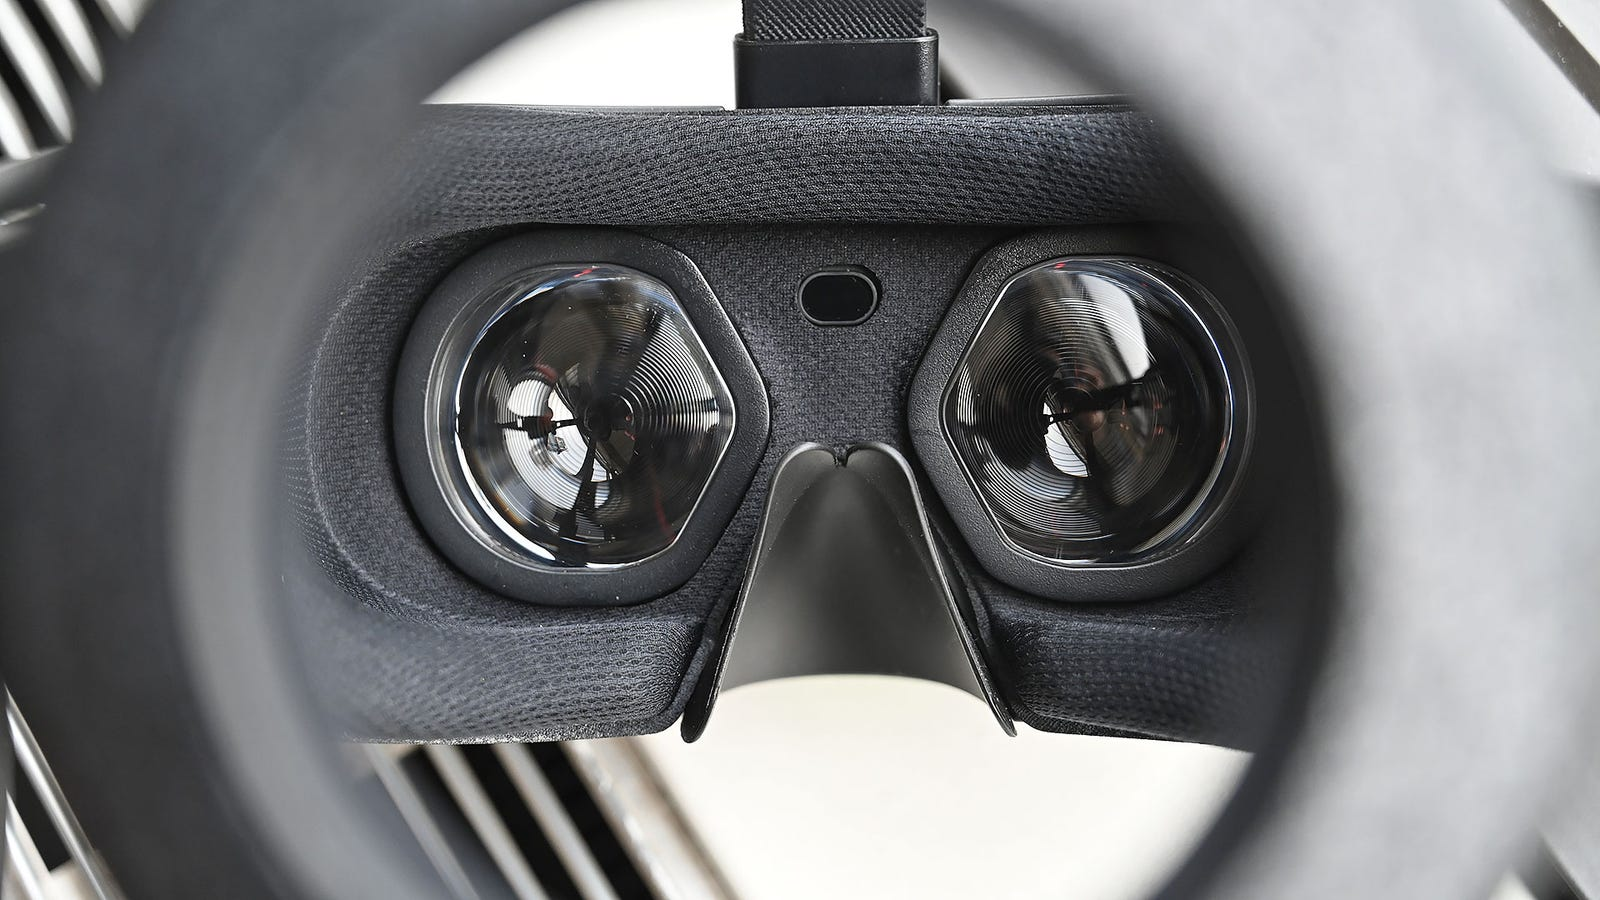 The Reverb's optics feature an aspherical shape that offers and wider field of view and increases the headset's visual sweet spot at the same time.